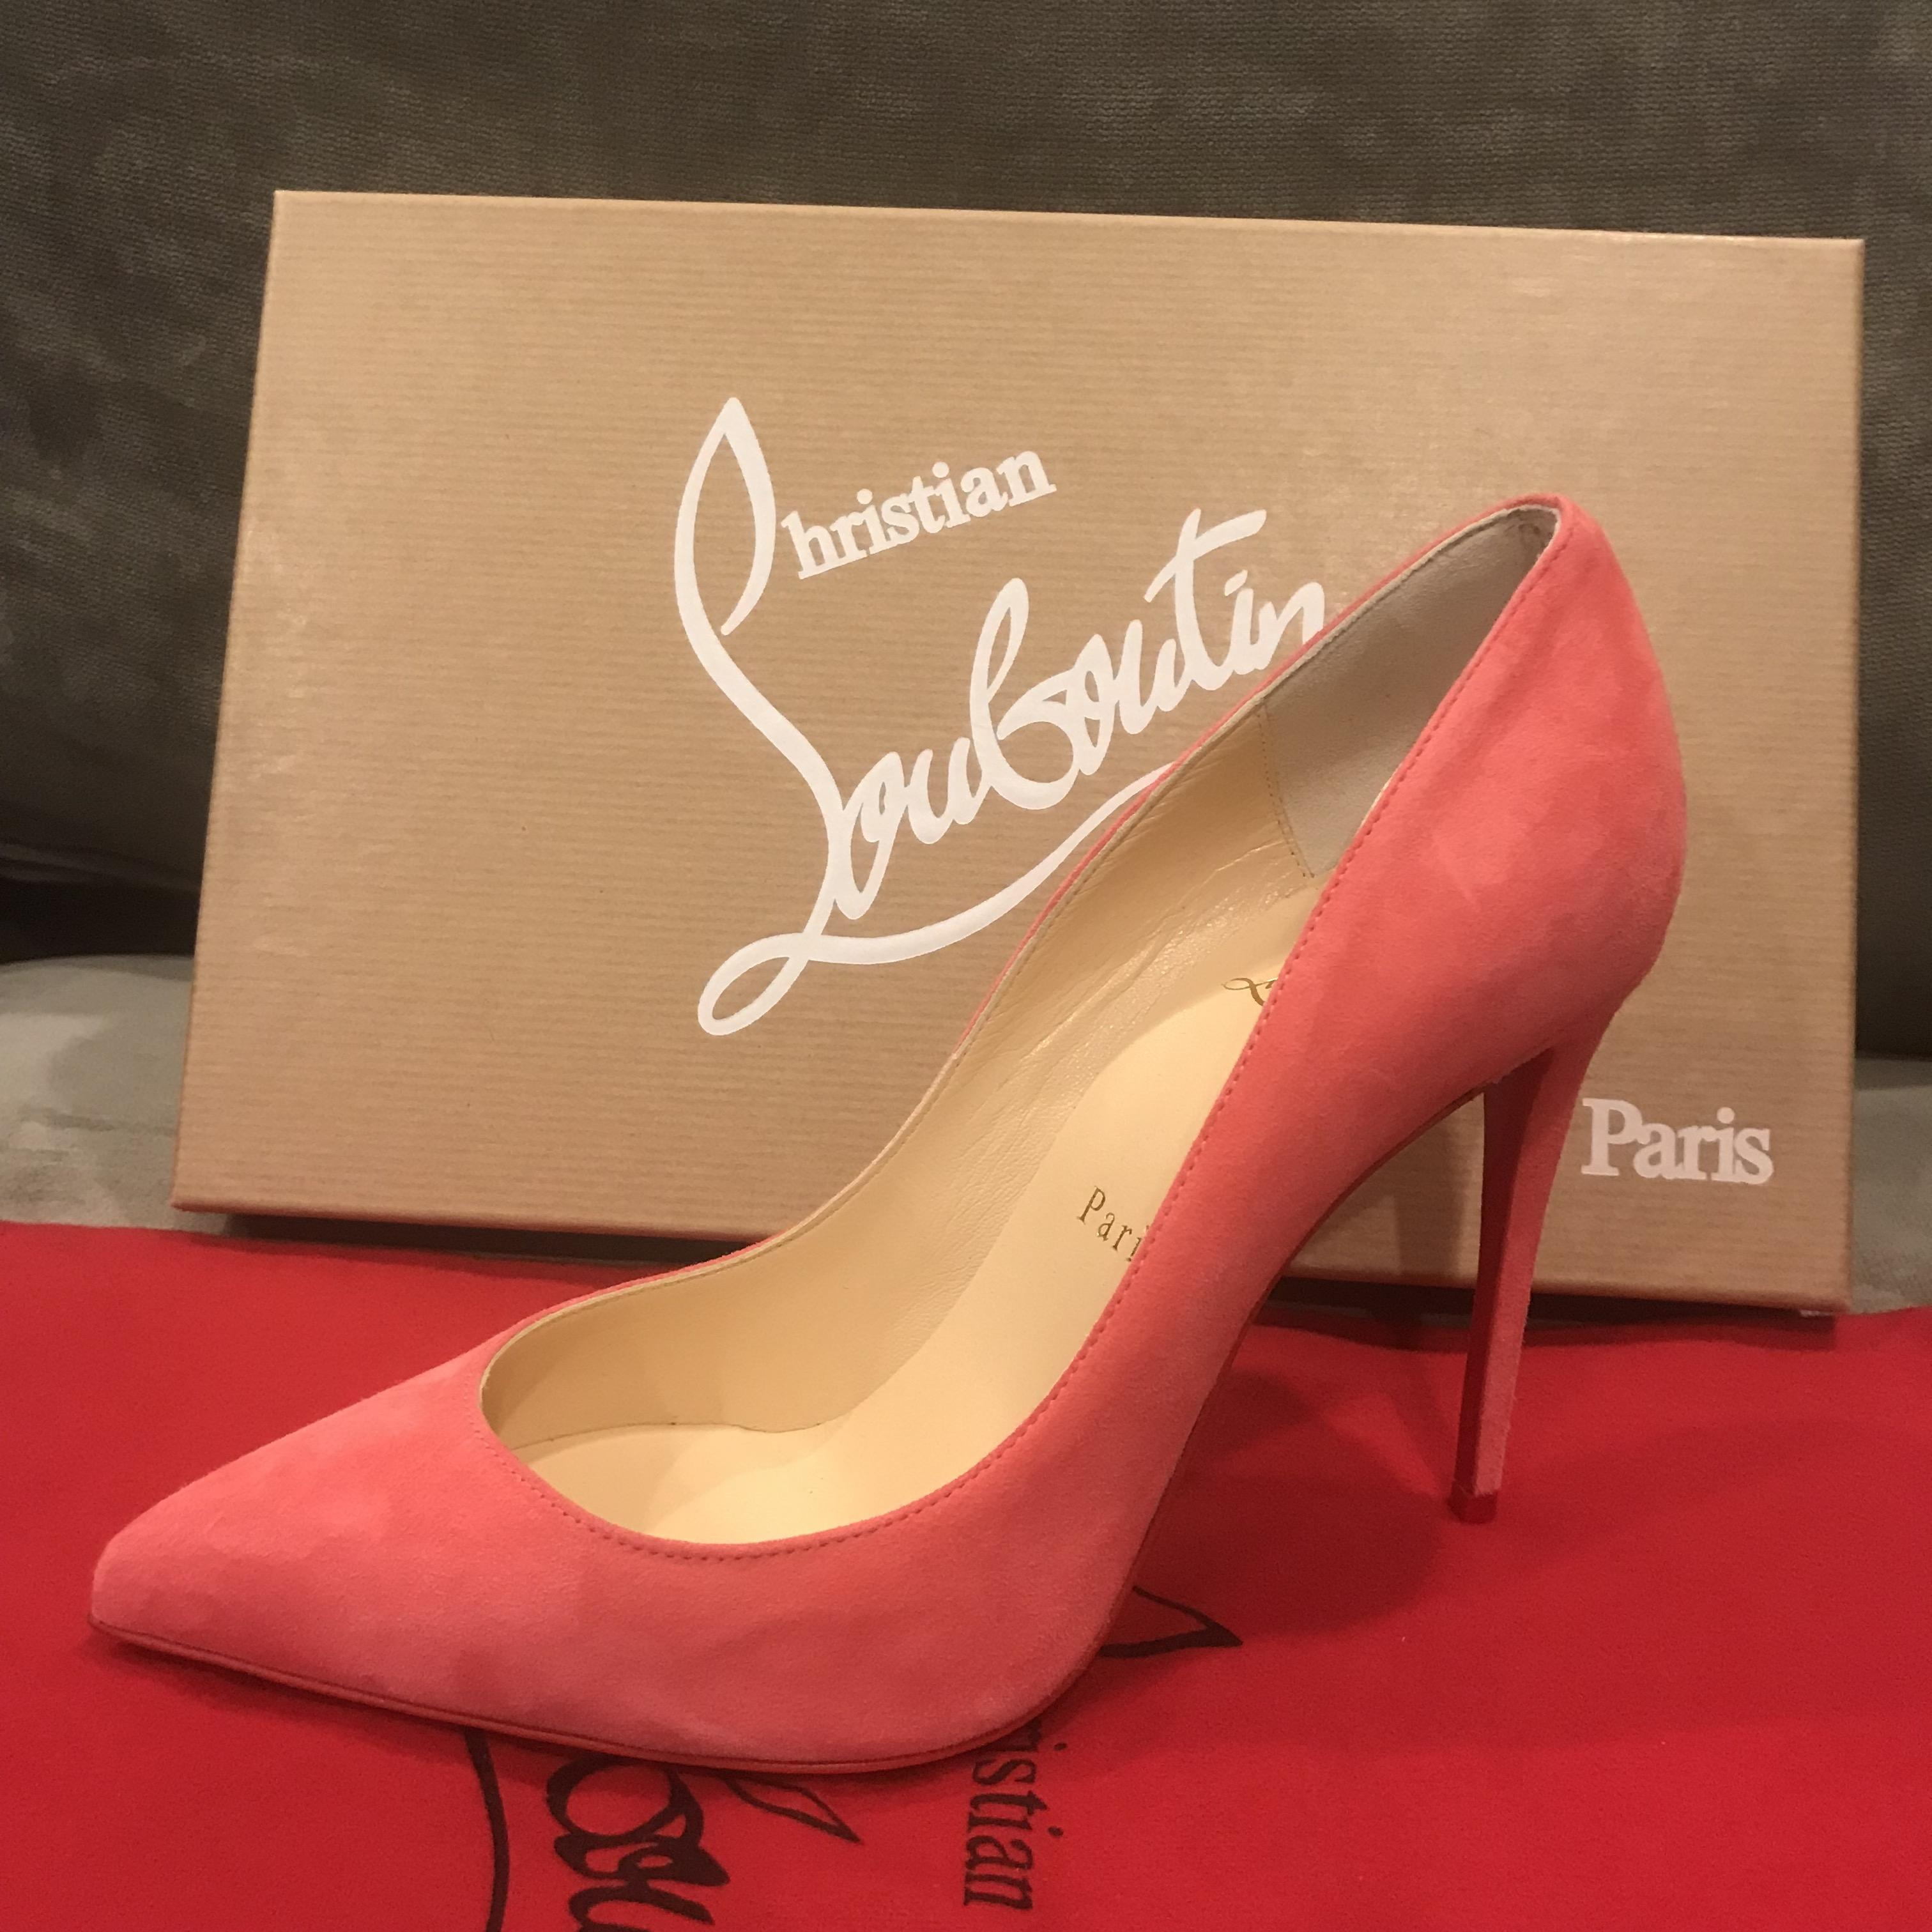 2f8479522705 ... Christian Louboutin Begonia (Pink) Pigalle Follies 100 Suede Pumps Size  Size Size EU 39.5 ...